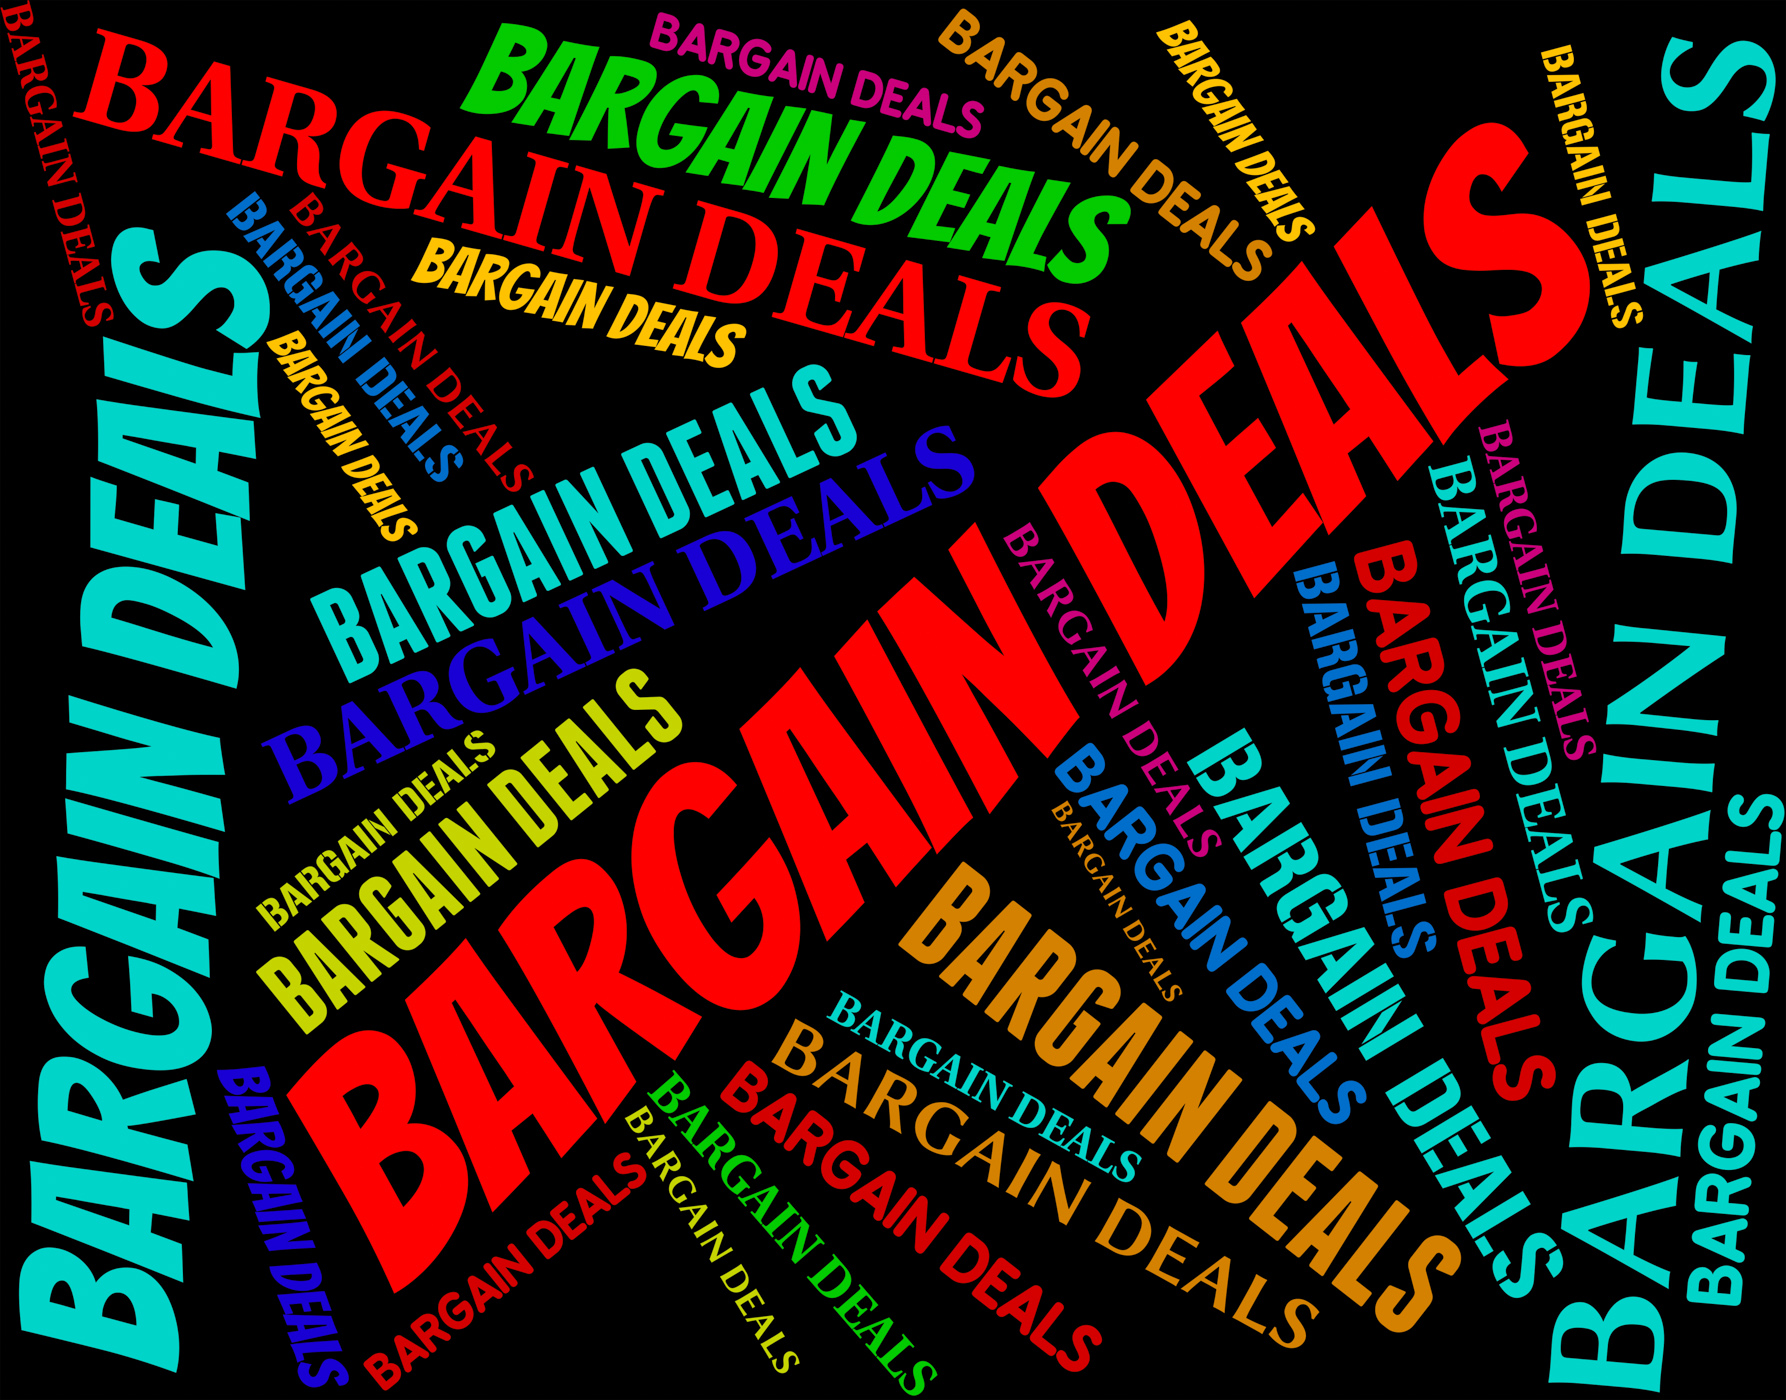 Bargain deals indicates words contract and transactions photo